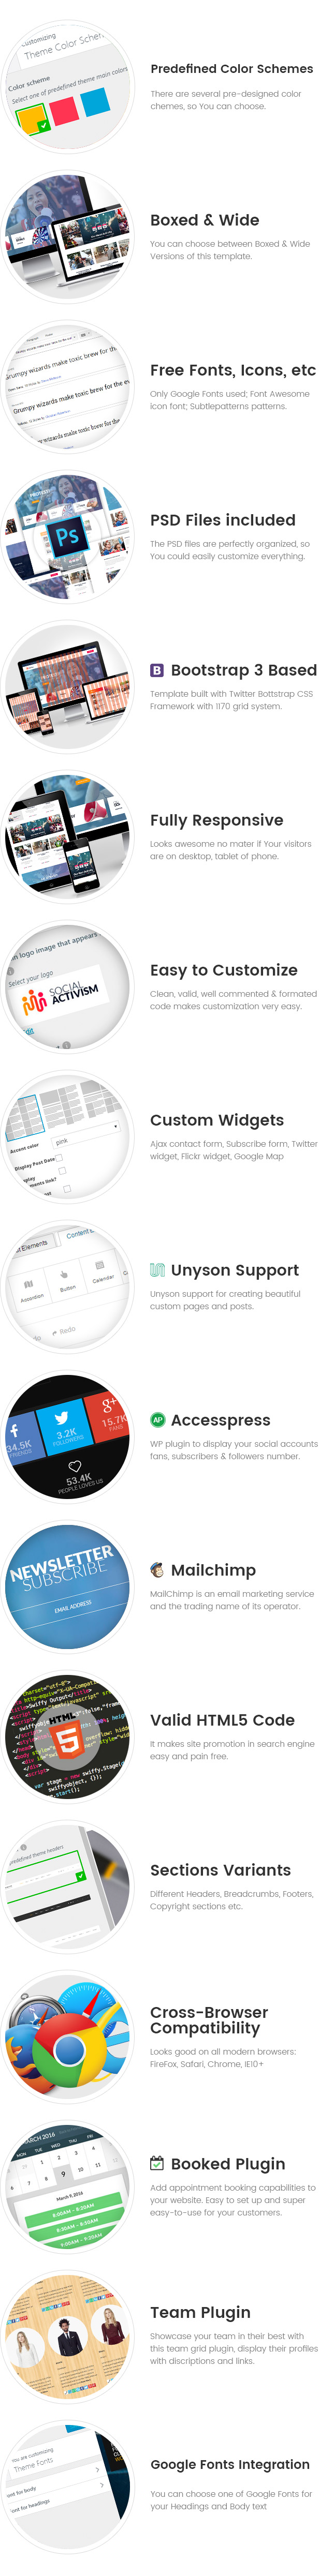 Social Activism - Non-Government Organization WordPress Theme